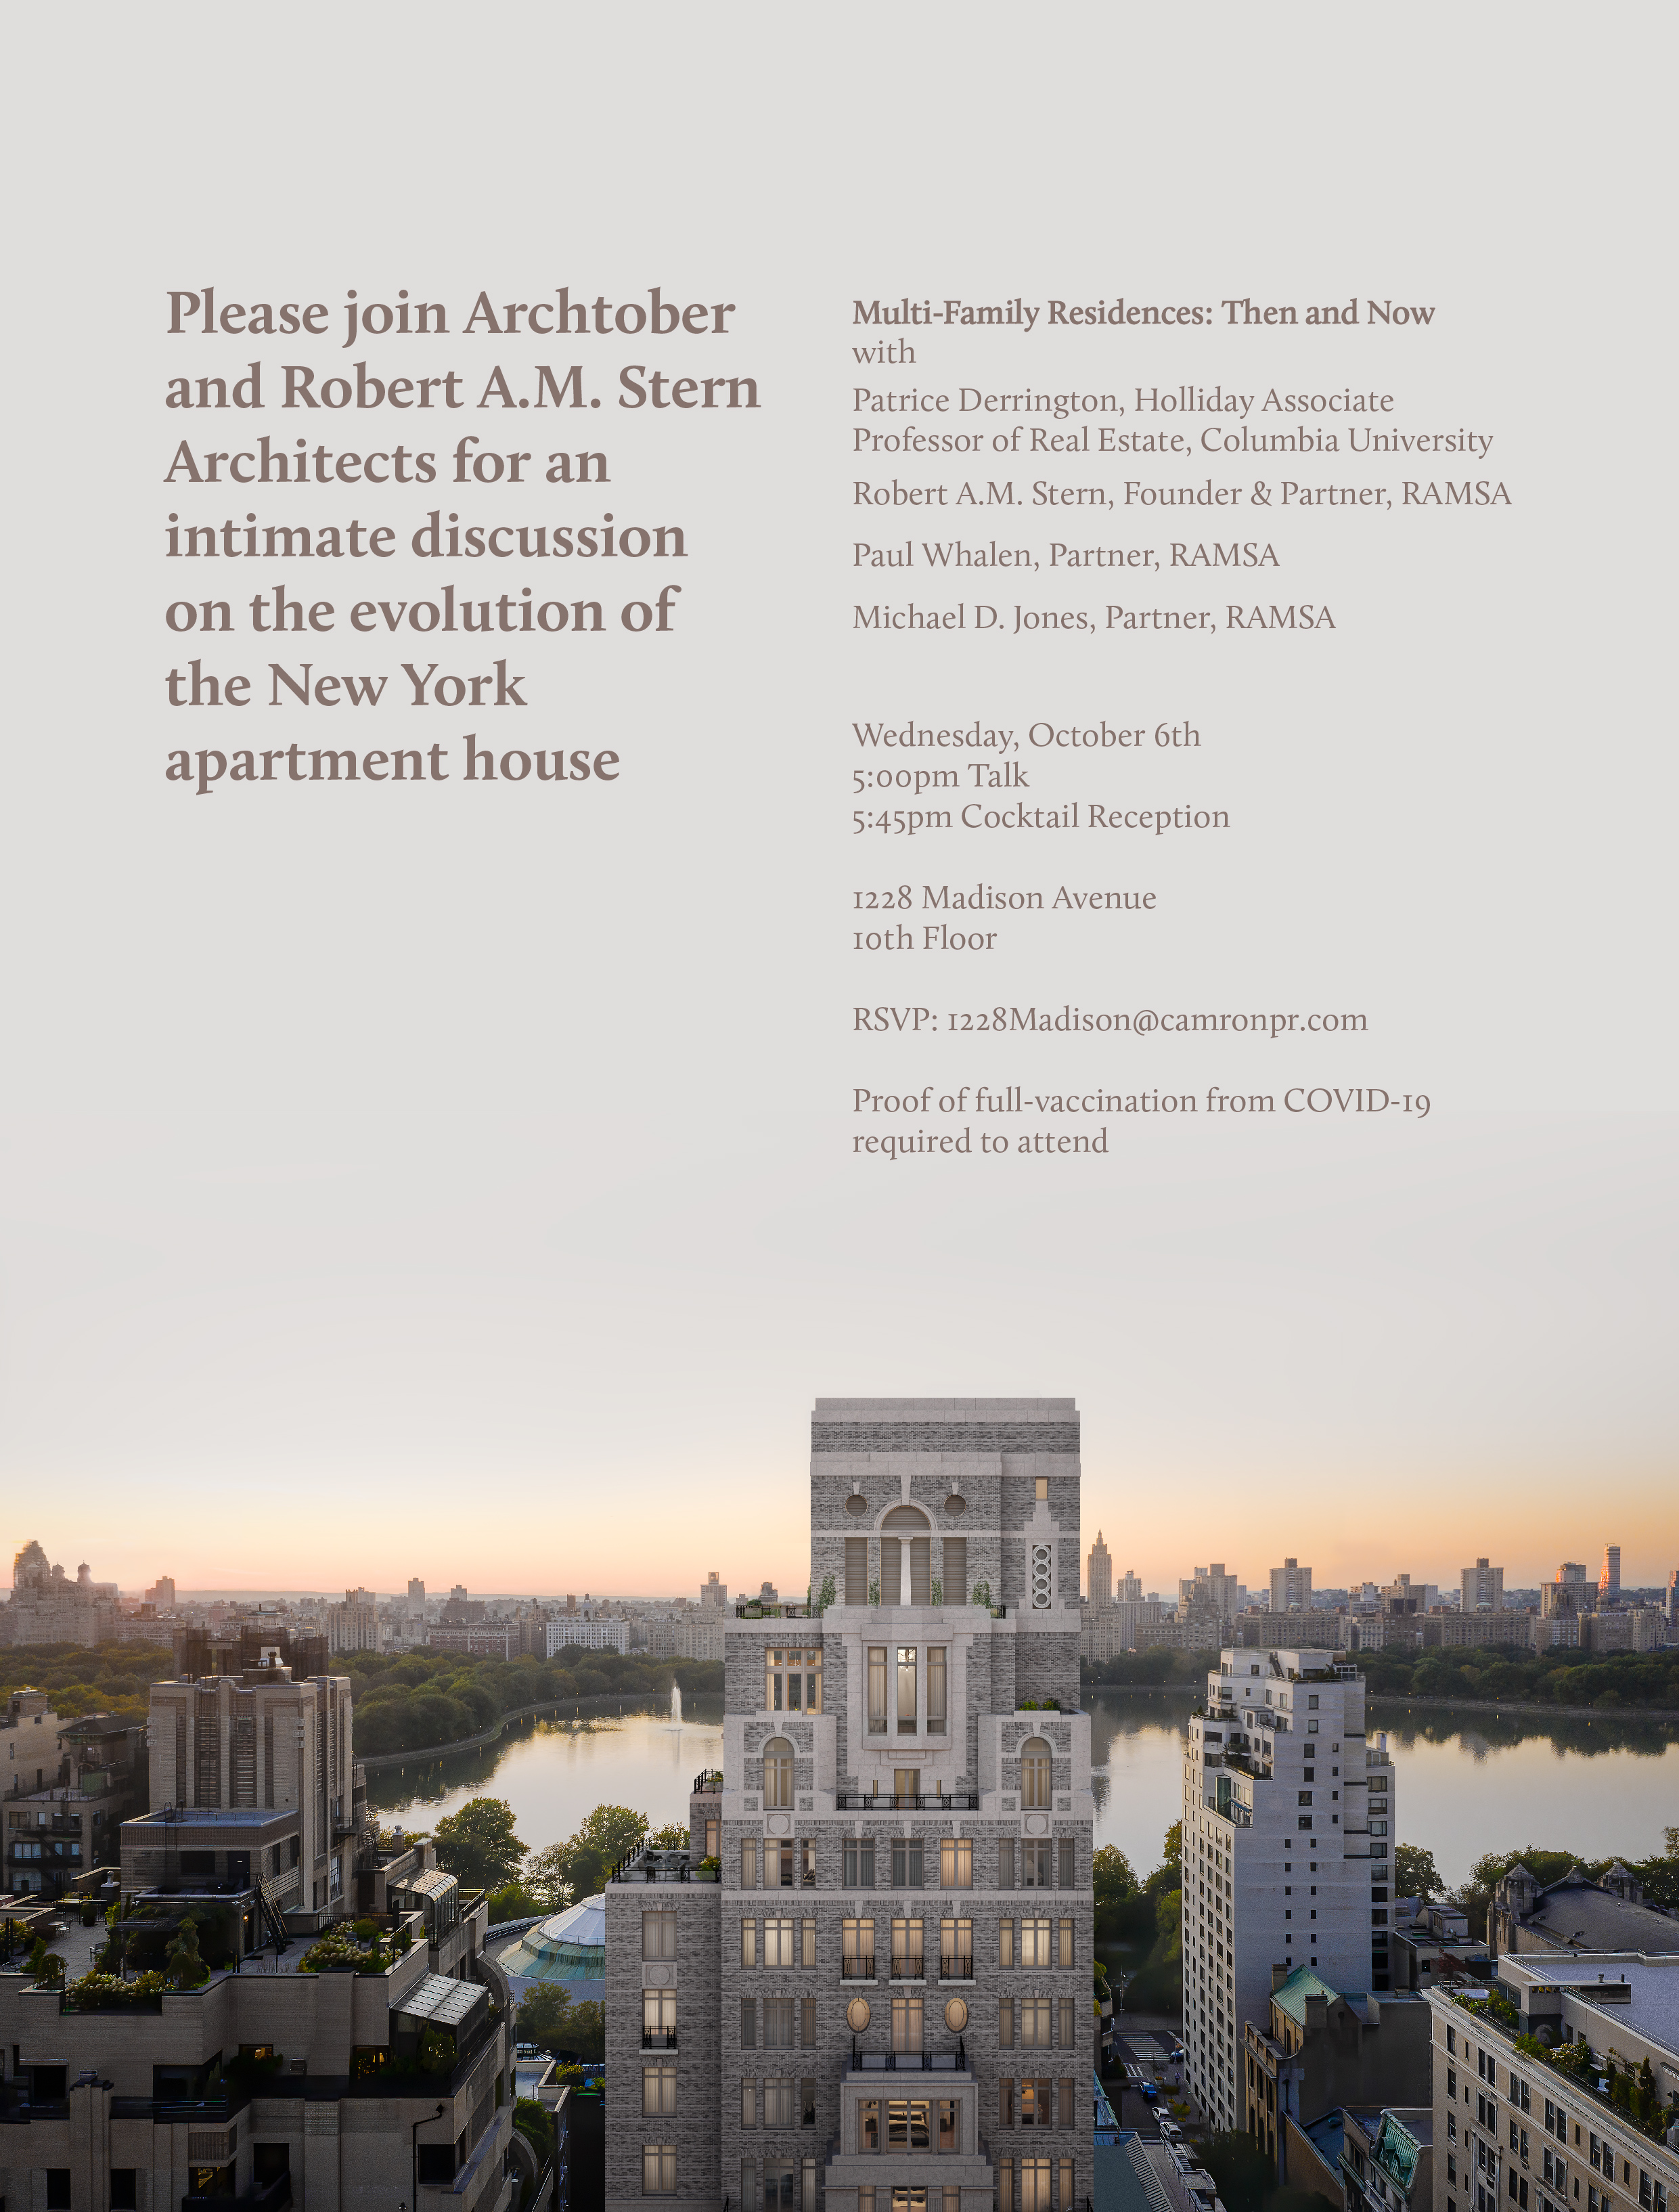 Promotional image for a program on multi-family residences, featuring New York City residential towers.